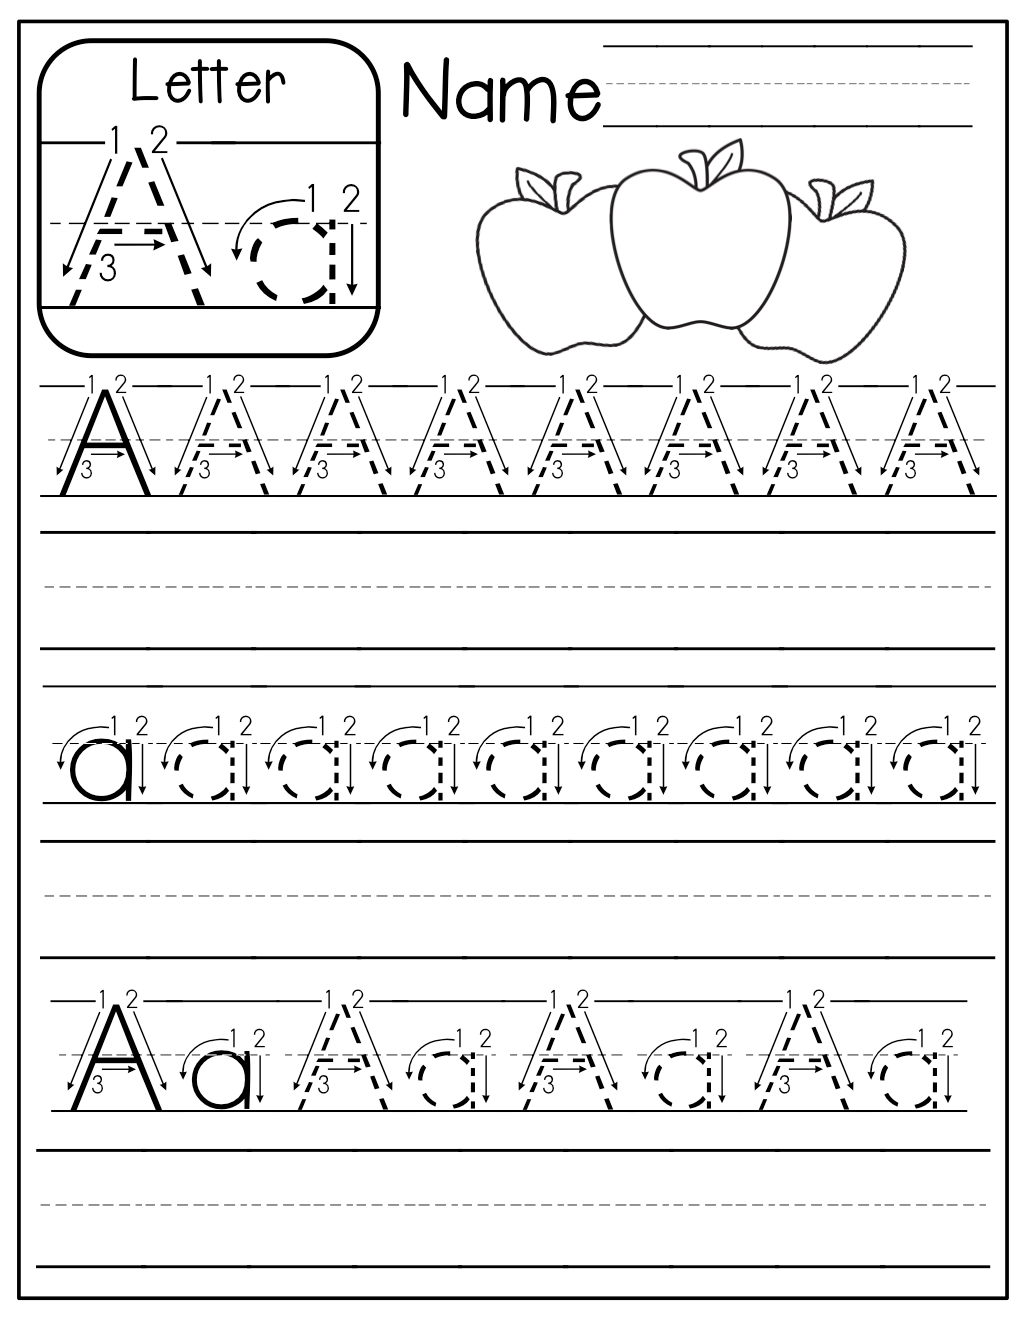 Free Free A Z Handwriting Pages Just Print Them Out